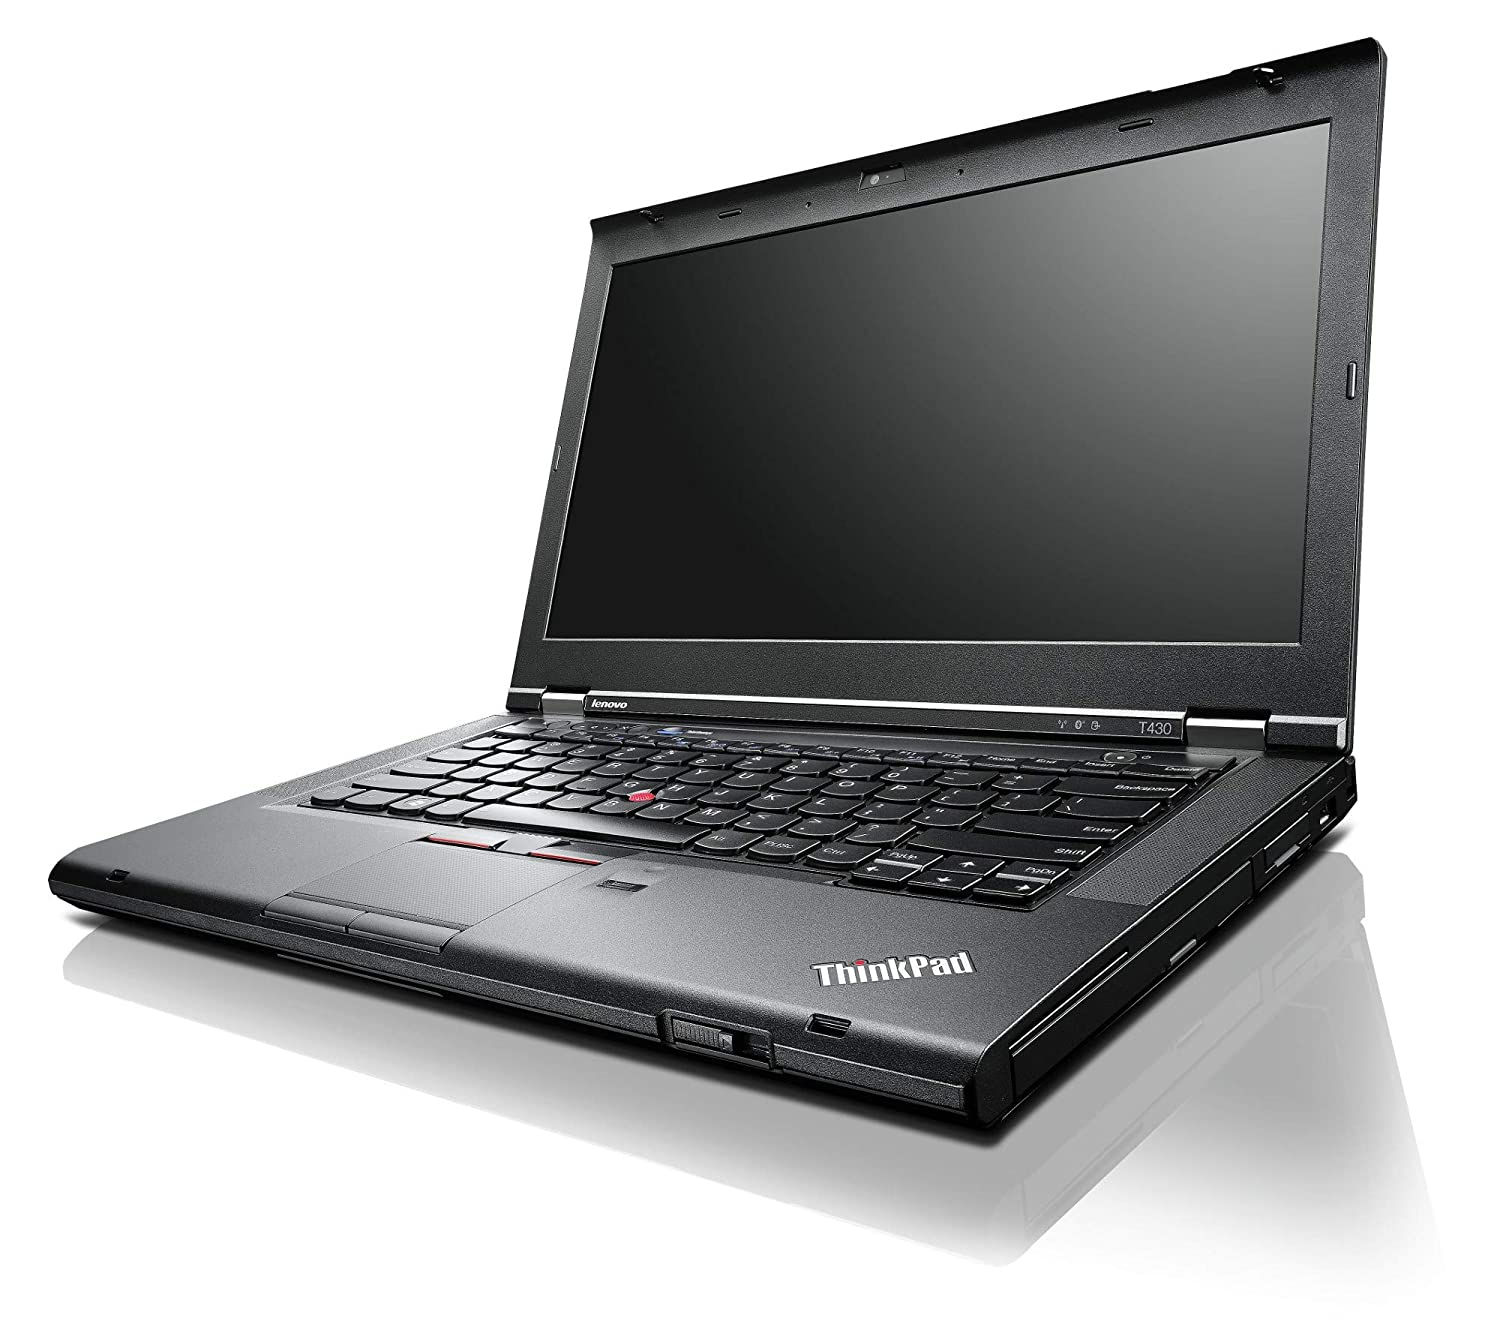 Lenovo Thinkpad T430 Business Laptop computer Intel i5-3320m up tp 3.3GHz, 8GB DDR3, 128GB SSD, 14in HD LED-backlit display, DVD, WiFi, USB 3.0, Windows 10 Pro (Renewed)